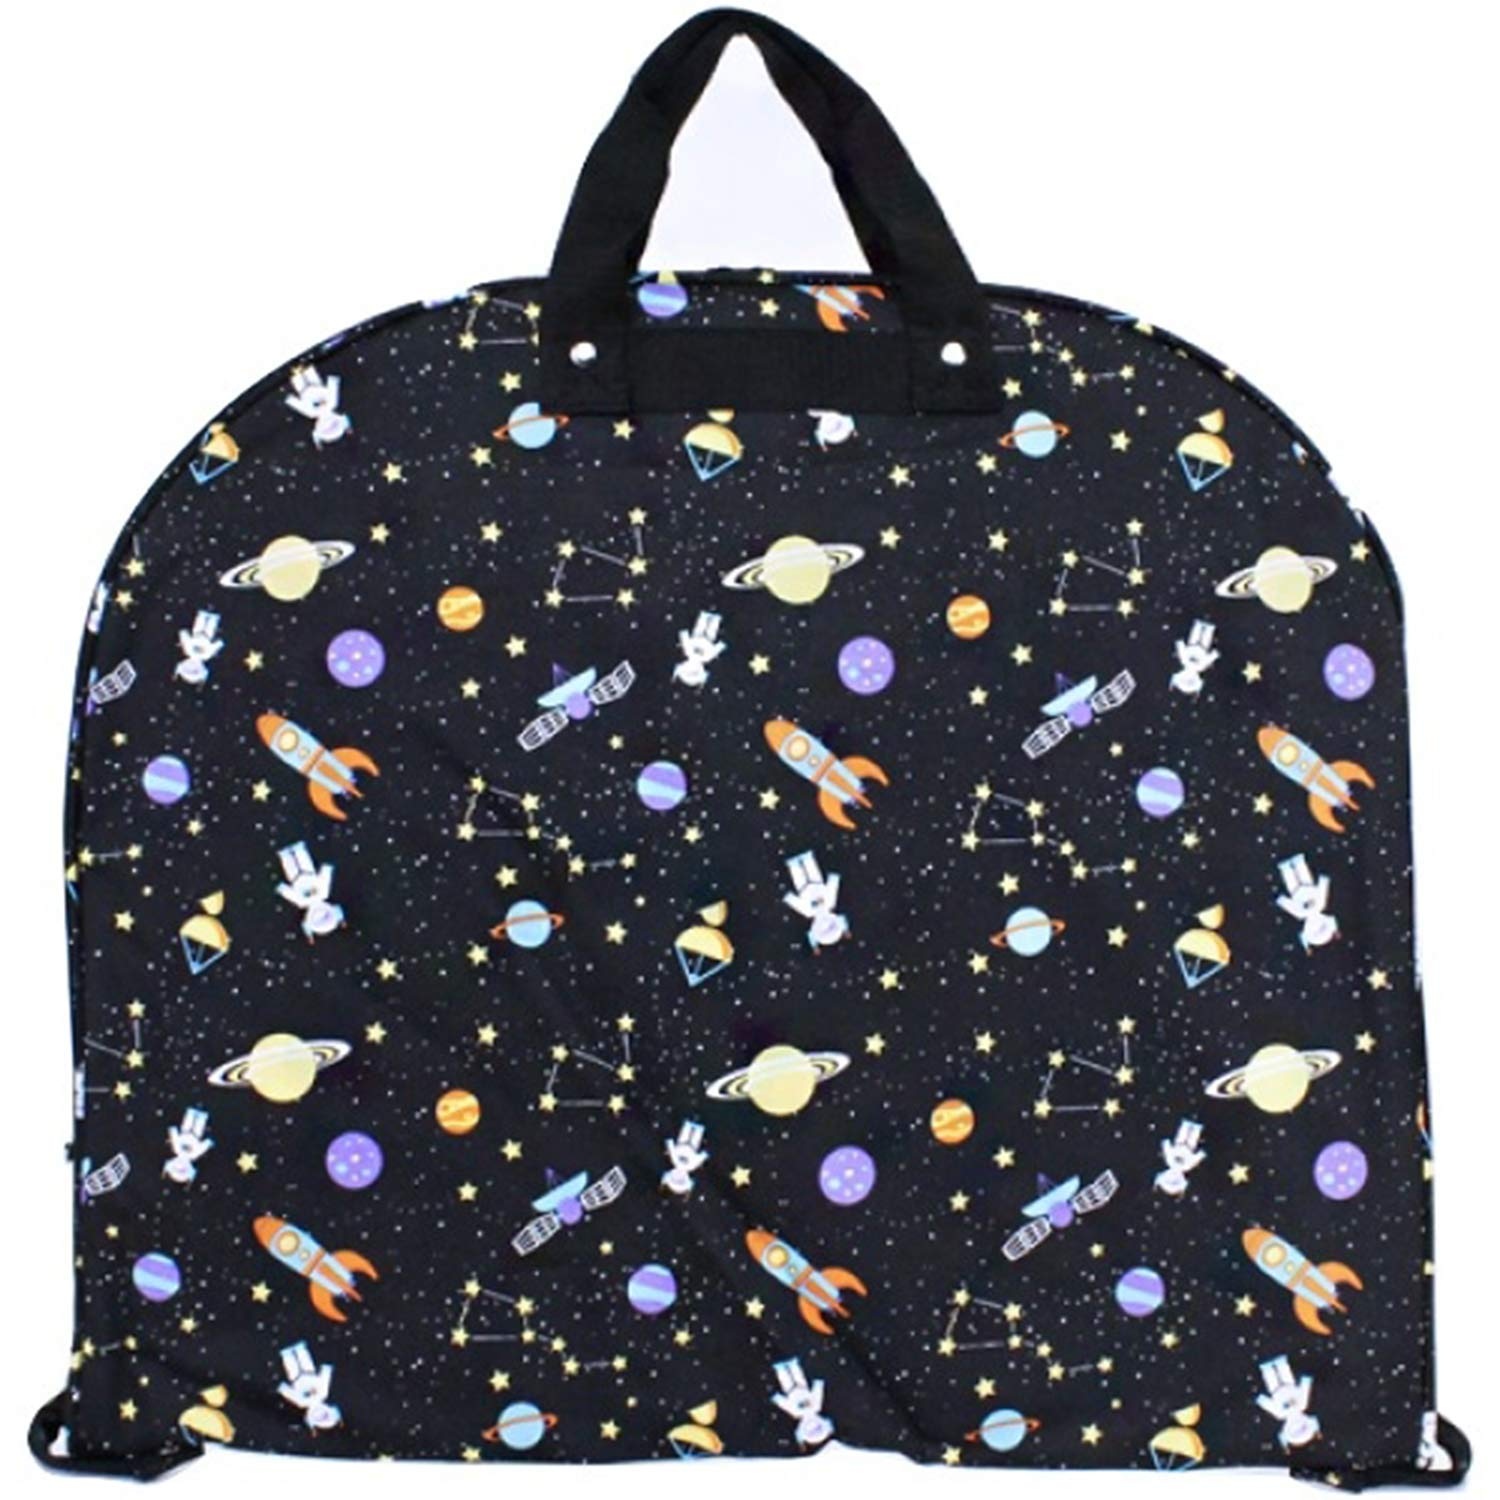 Galaxy Print Outer Space Garment Bag Travel Luggage Black